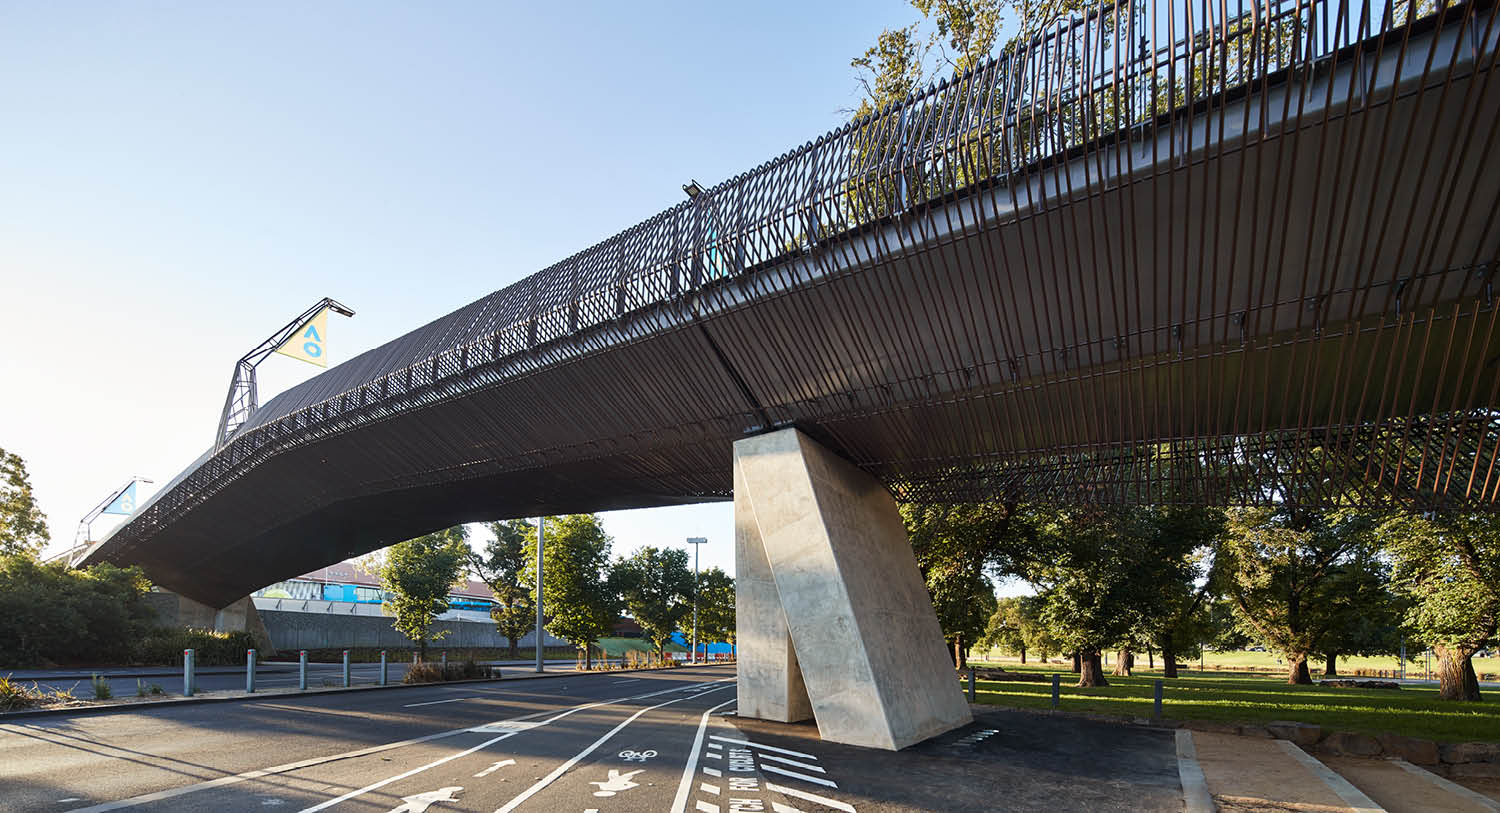 The bridge design is slender, a flat steel girder structure that tapers at its edges to achieve the required span across Batman Avenue